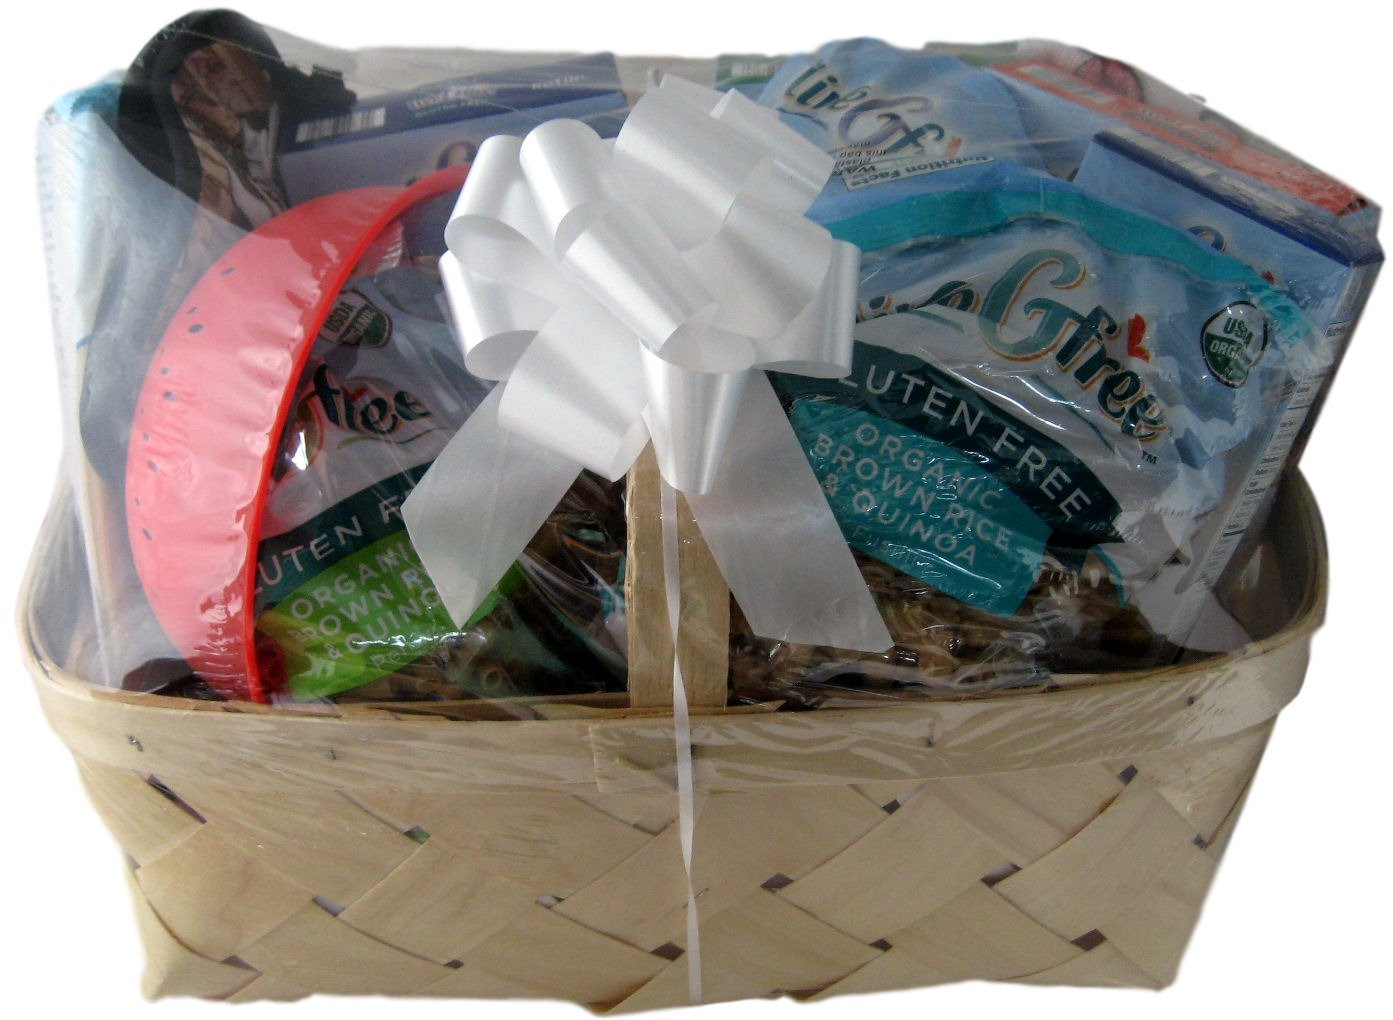 Amazon huge pasta lovers gluten free sampler gift basket amazon huge pasta lovers gluten free sampler gift basket gourmet noodles macaroni cheese spaghetti and organic quinoa rice grocery gourmet food negle Images